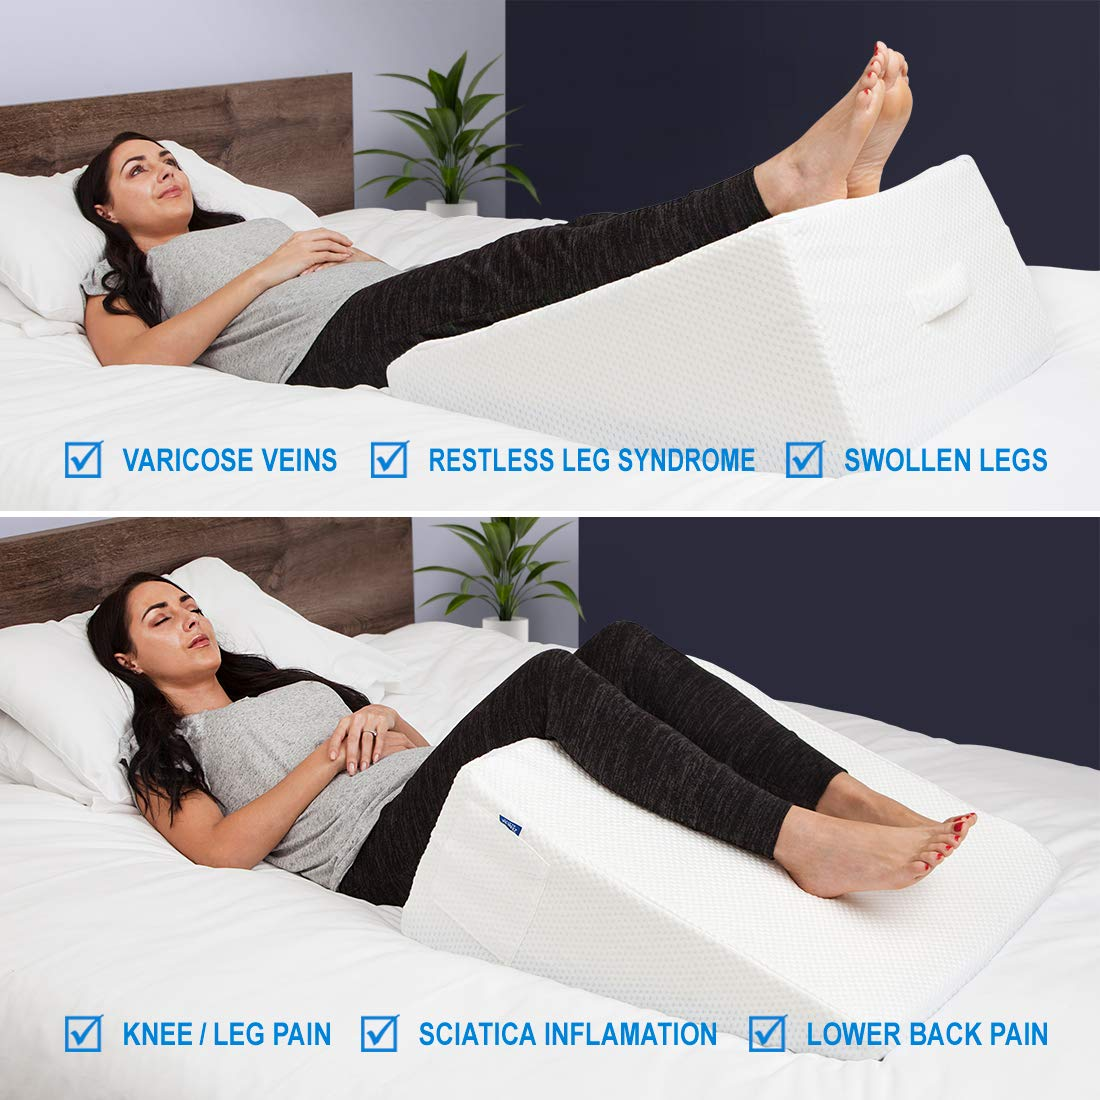 LUXELIFT Support Therapy Bed Wedge Pillow | Multipurpose adjustable 12 inch or 8 inch height | Stay-Cool Gel-Infused Memory Foam, Back & Leg Pillow | Back Pain, Injury, Reflux, GERD, Sinus & Snoring by Zenesse Health (Image #4)